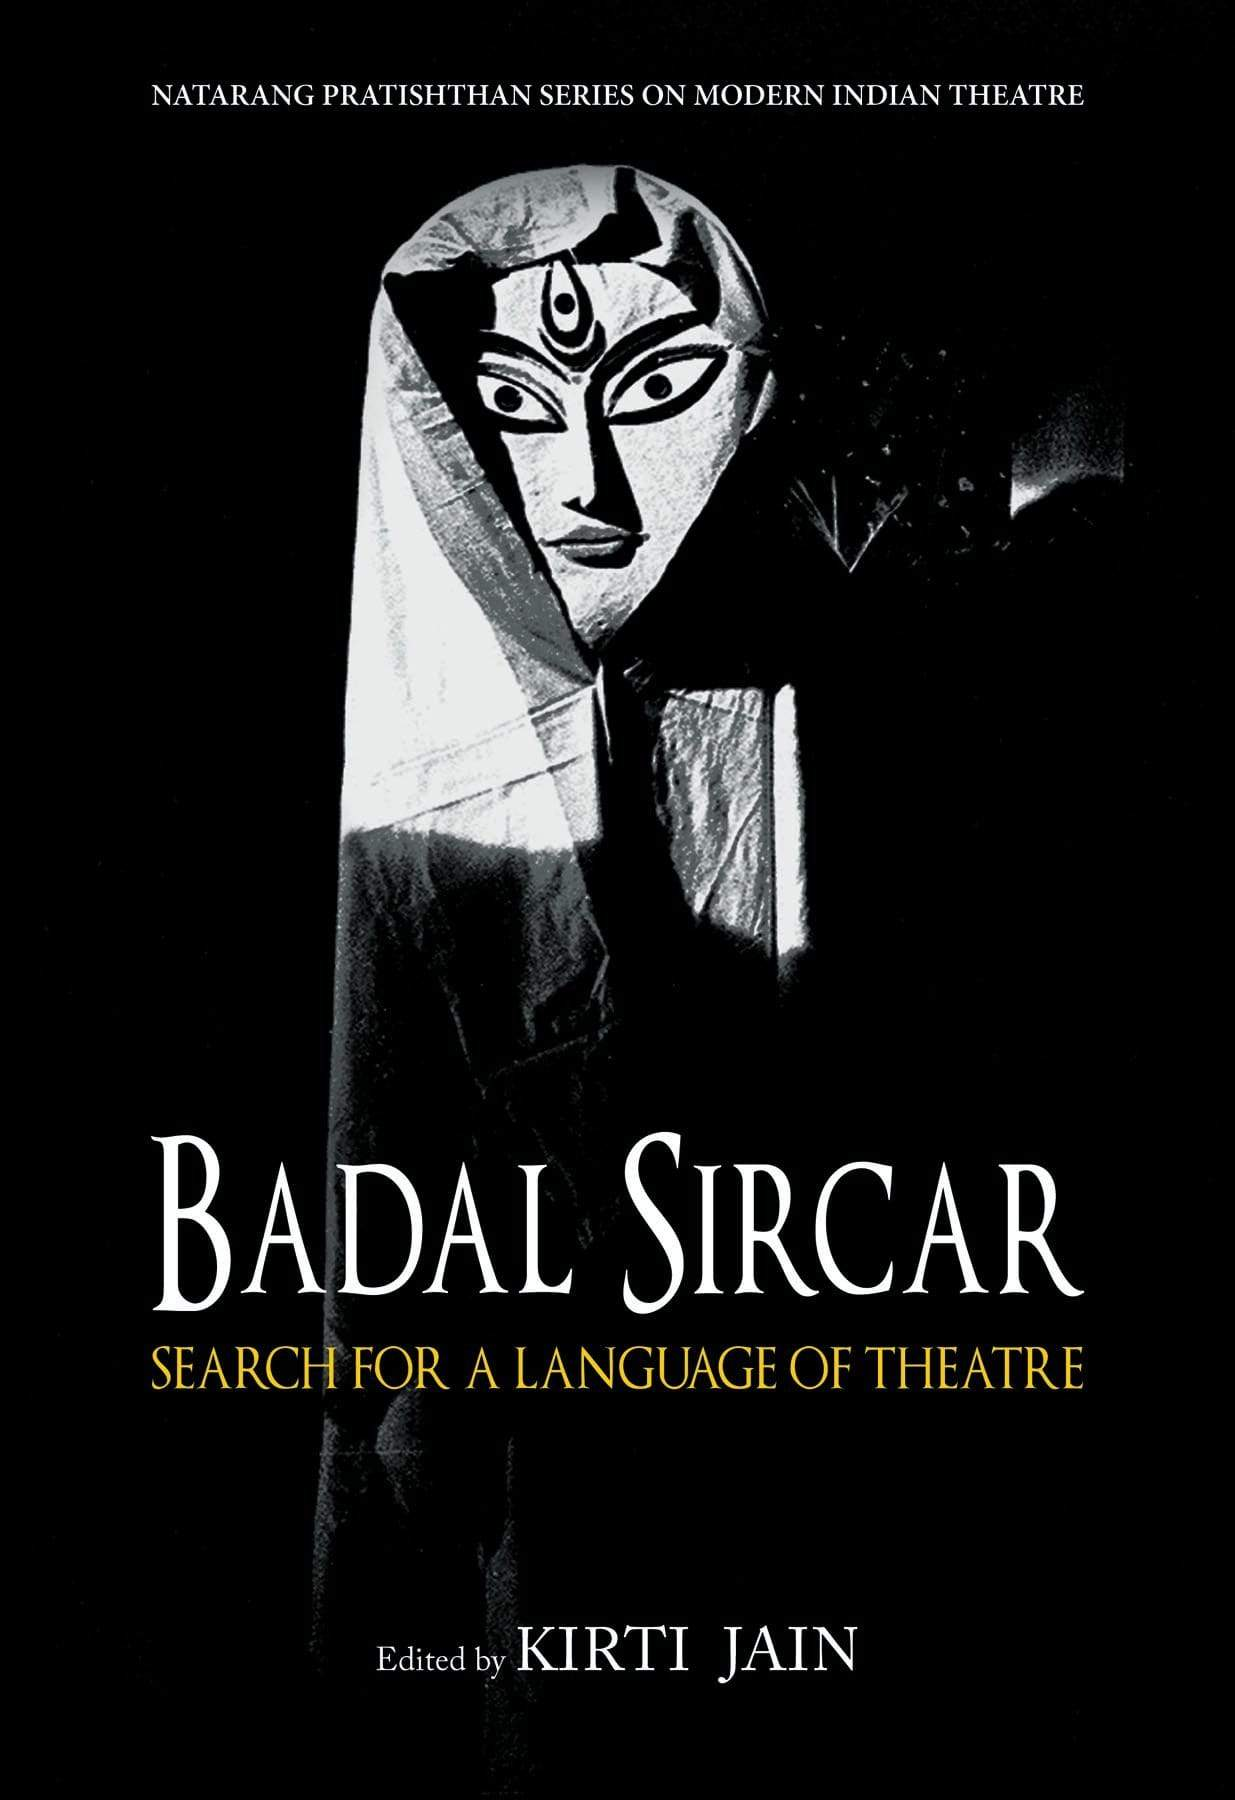 Badal Sircar: Search for a Language of Theatre